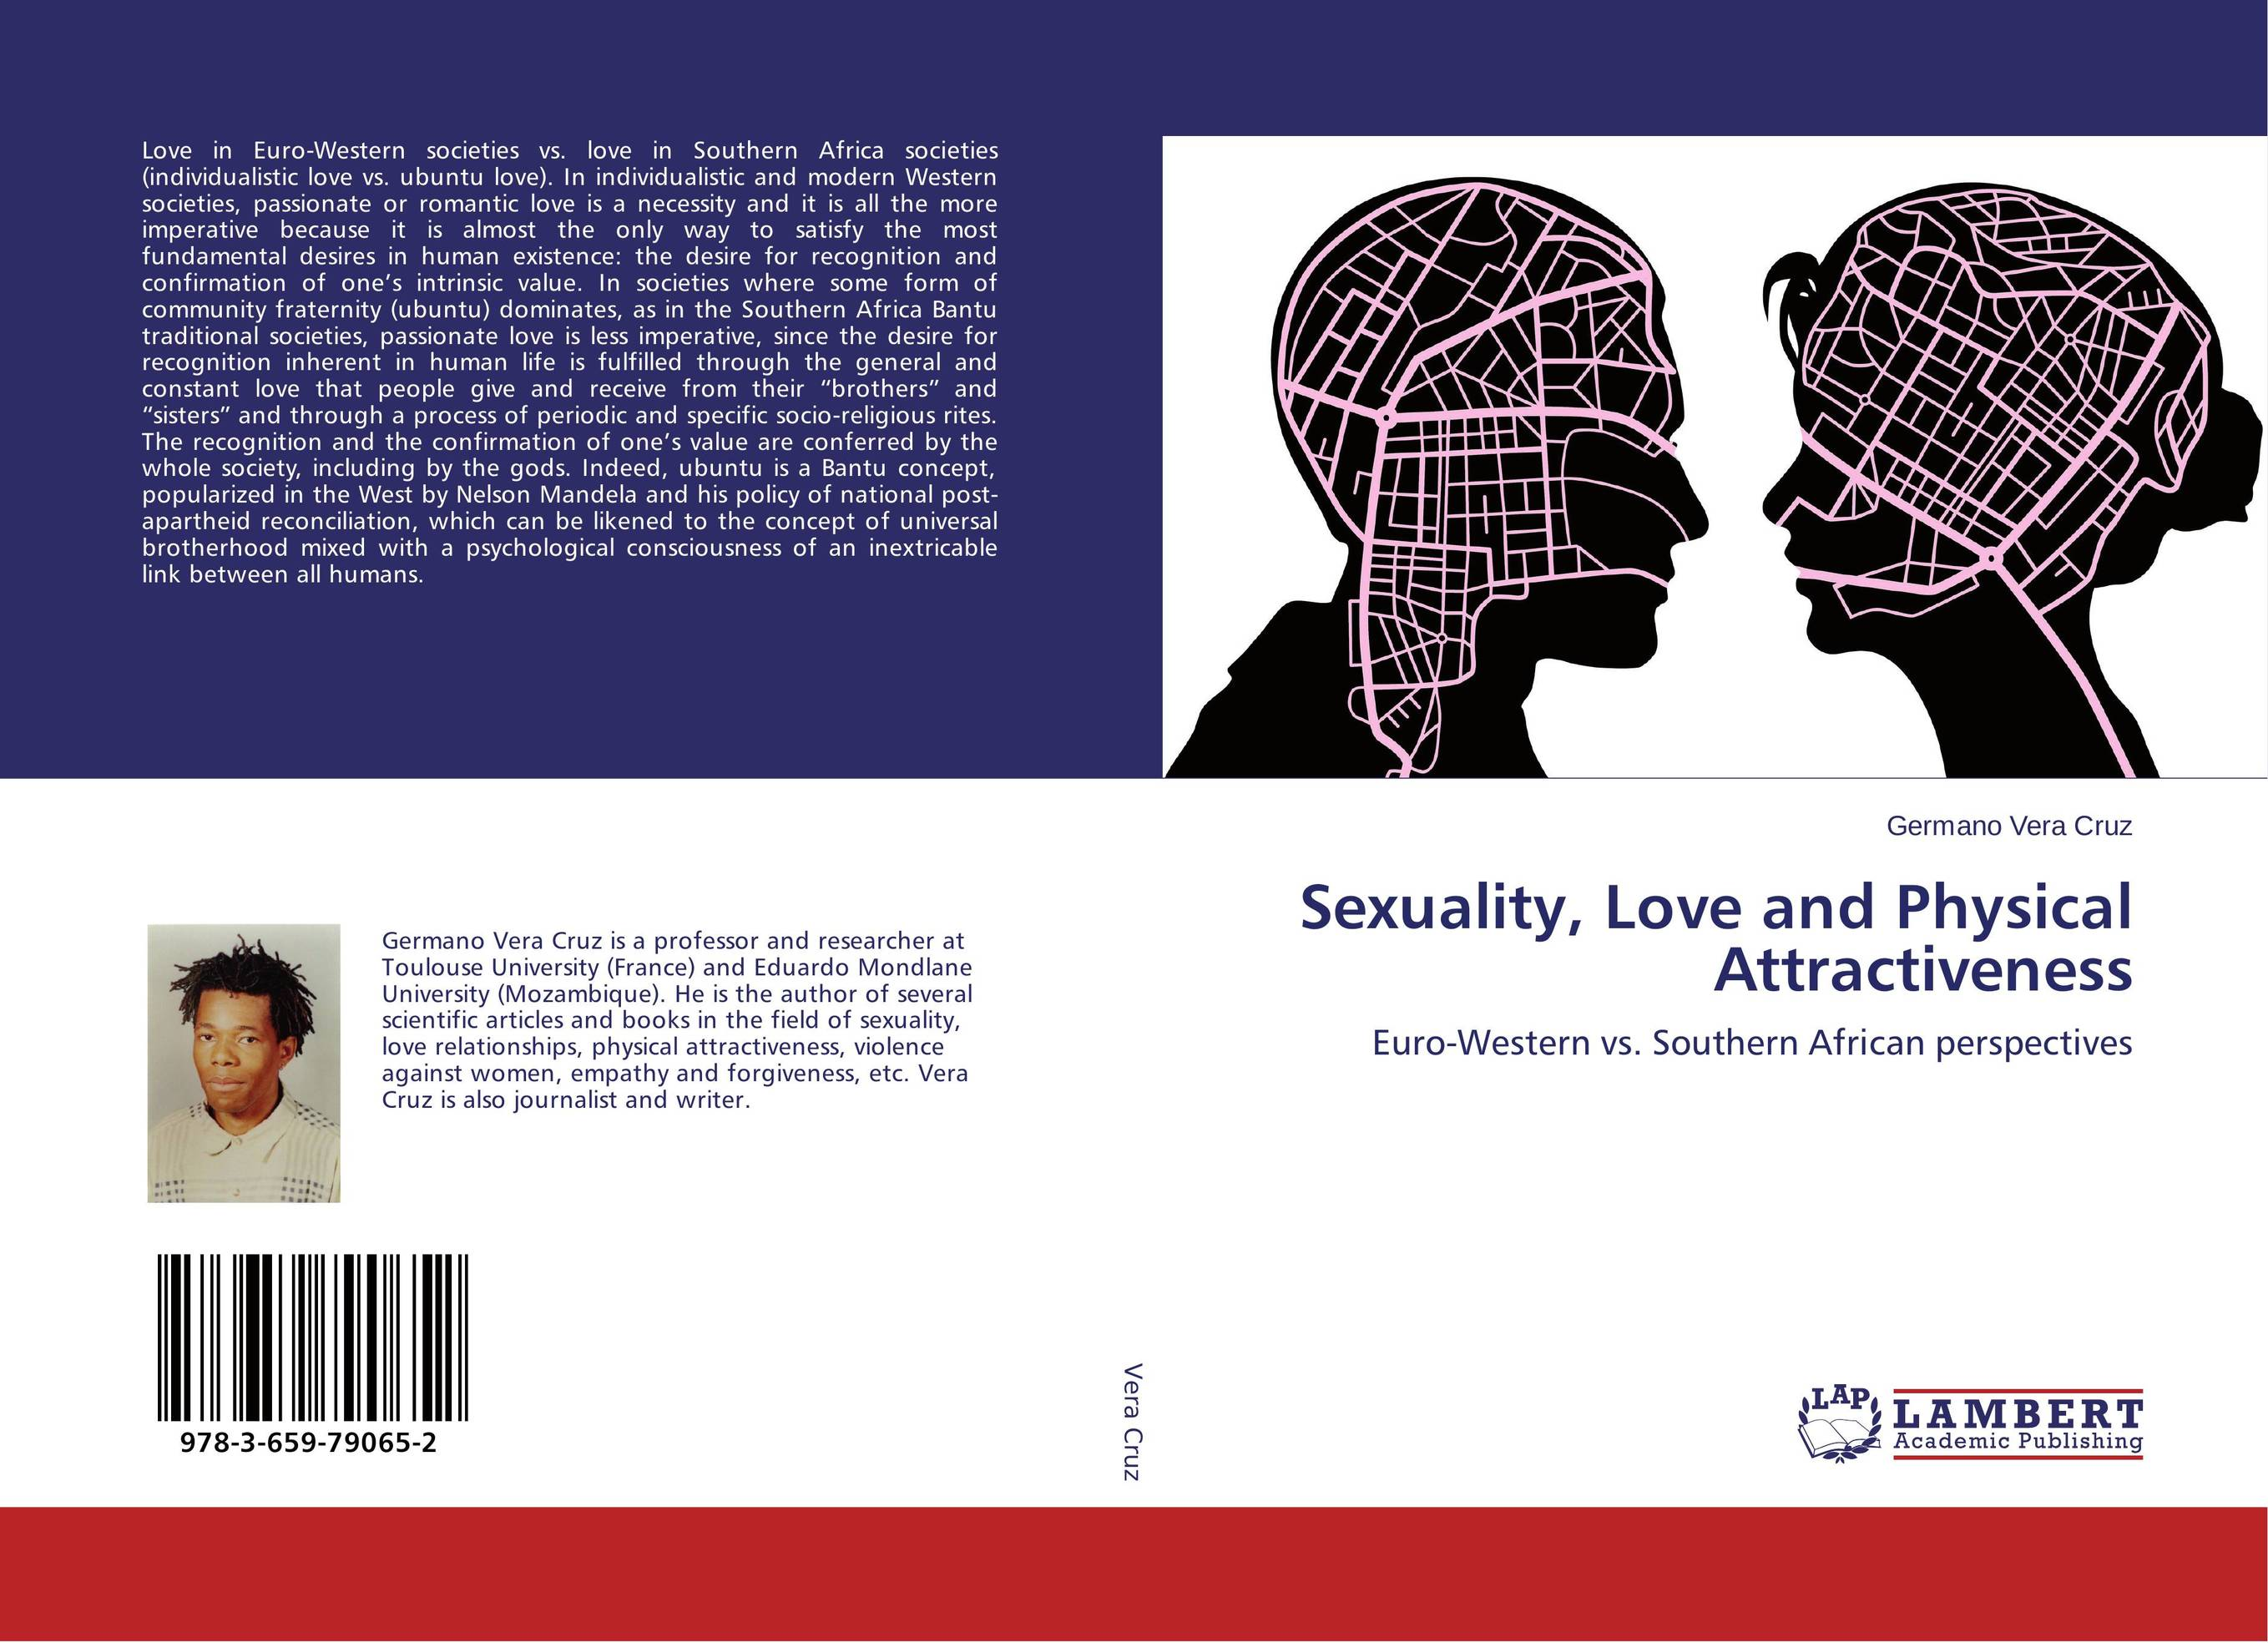 a comparison of gender and sexuality in arab and western society Read this full essay on the social construction of gender and sexuality society created the role of gender and created an emphasis on the differences between the two genders alma gottlieb states: biological inevitability of the sex organs comes to stand for a perceived inevitability of social roles.